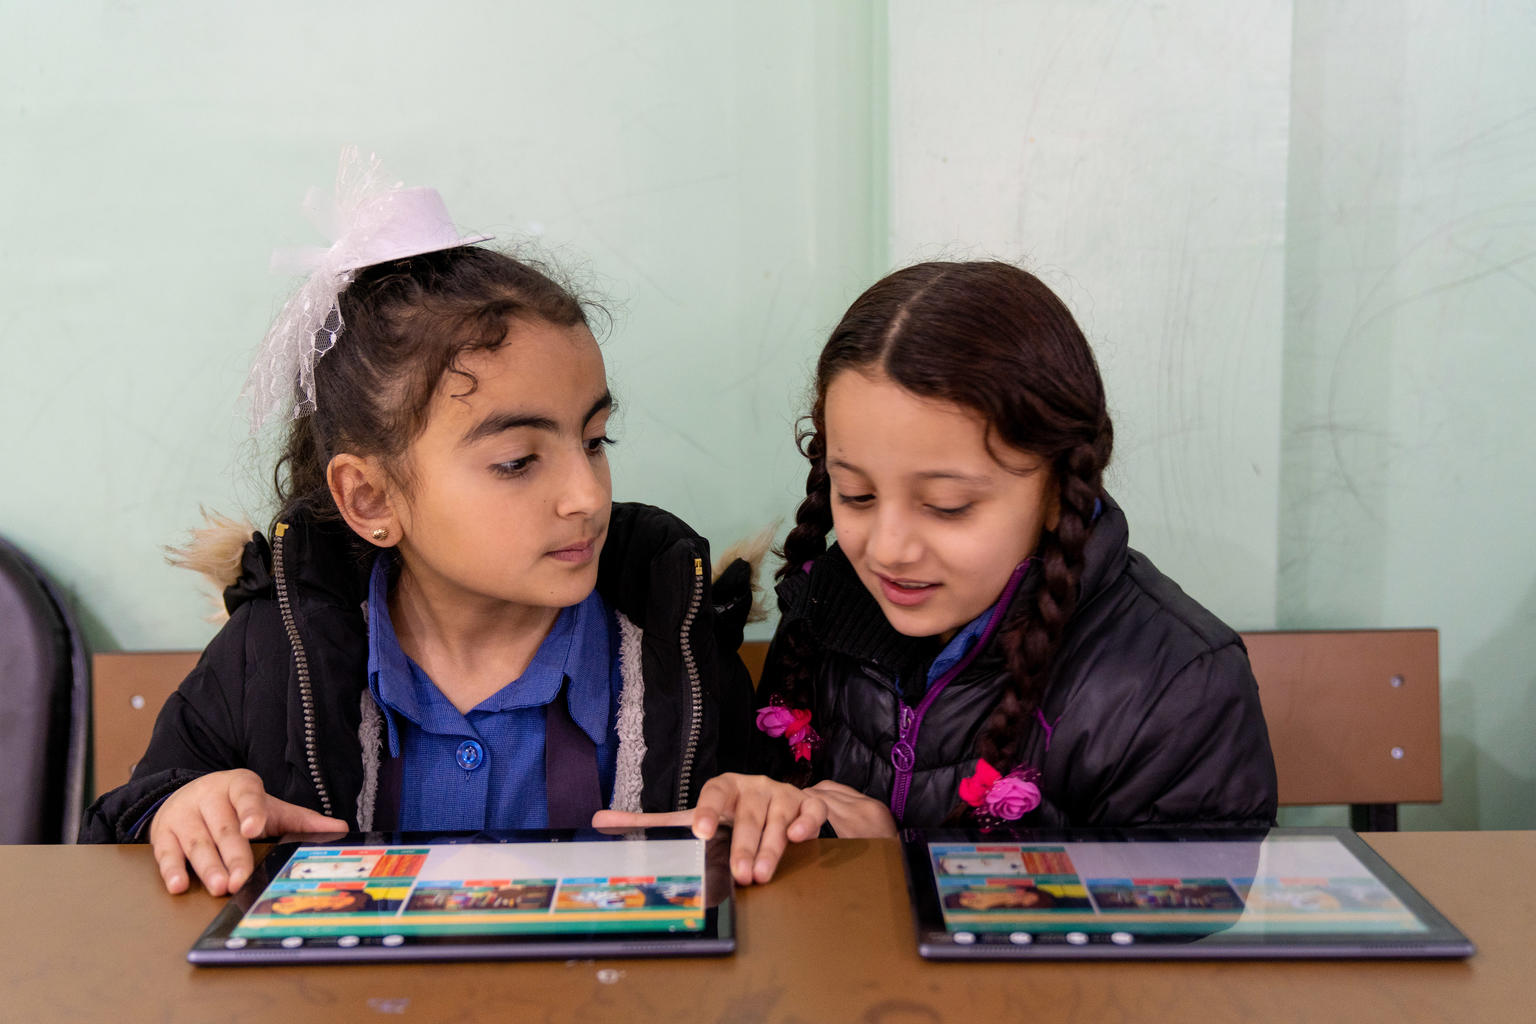 Two young schools girls with tablet PCs at a desk.